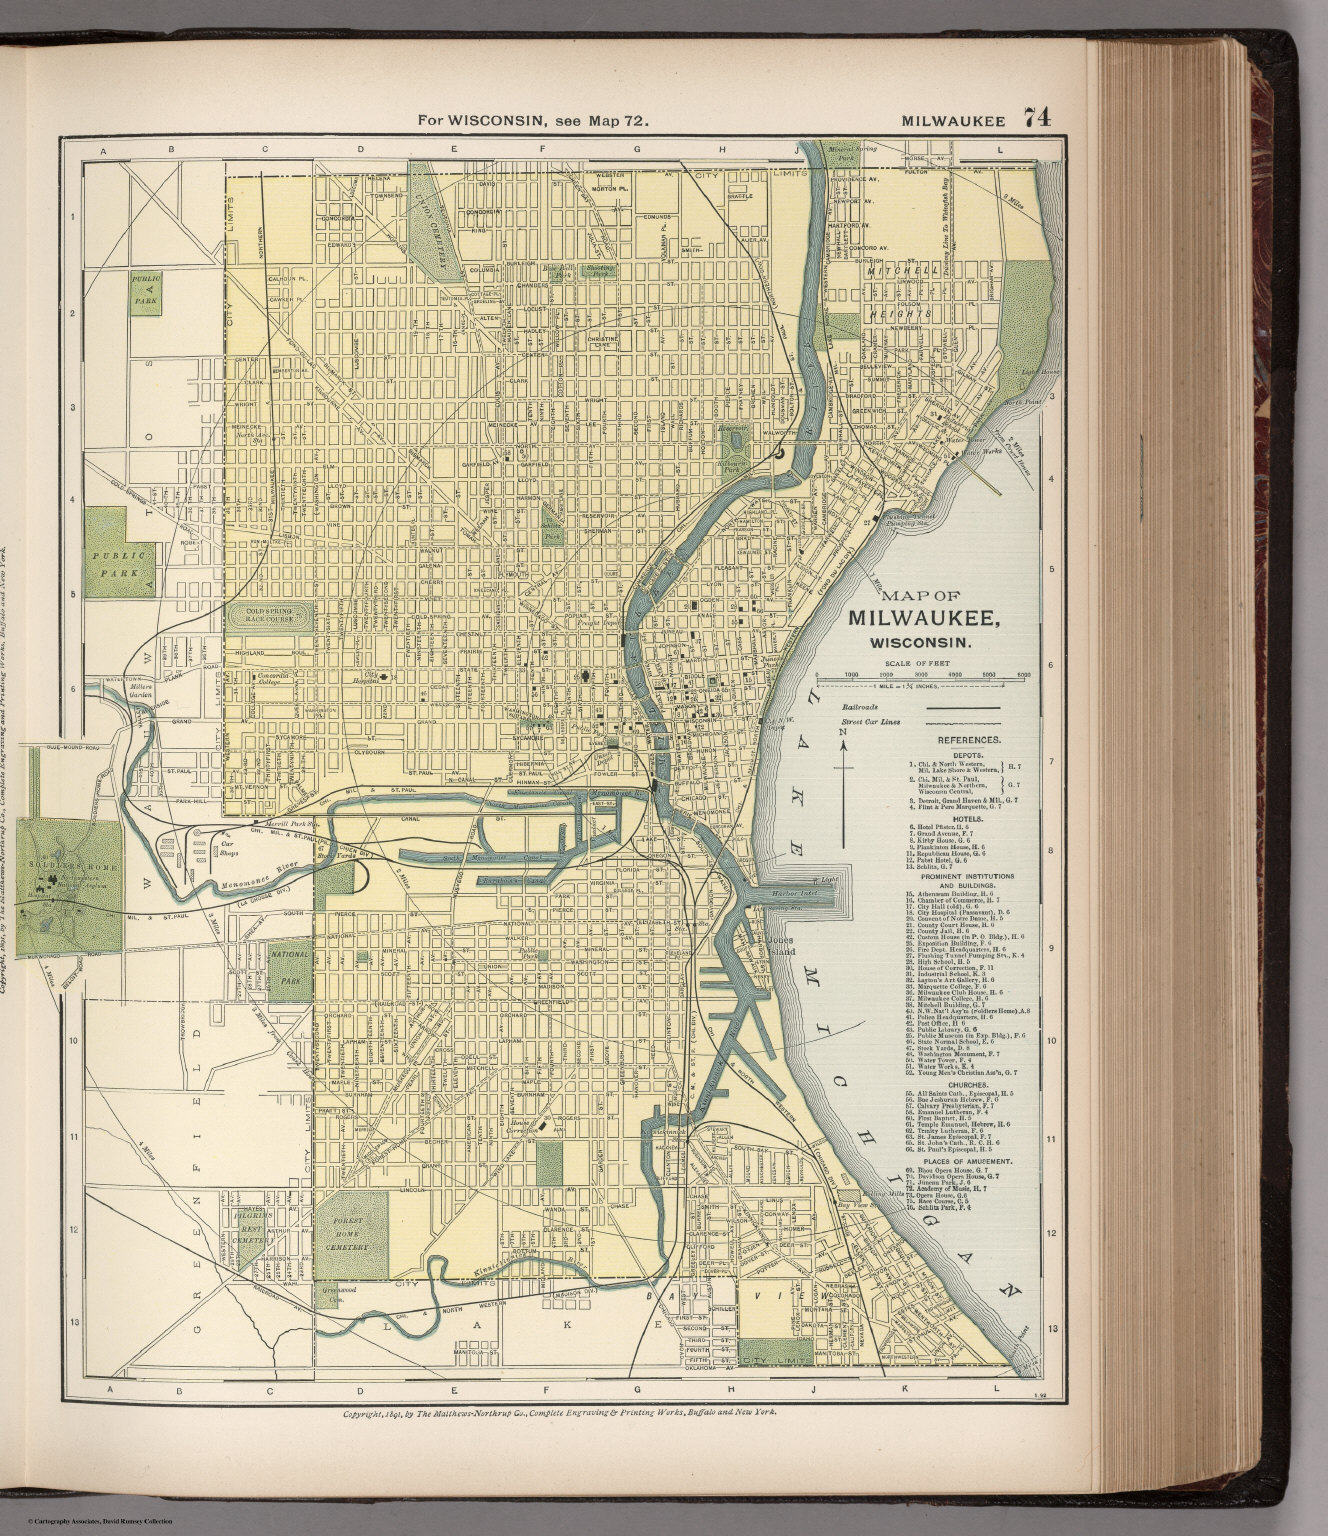 Map of Milwaukee, Wisconsin. 74 - David Rumsey Historical Map Collection